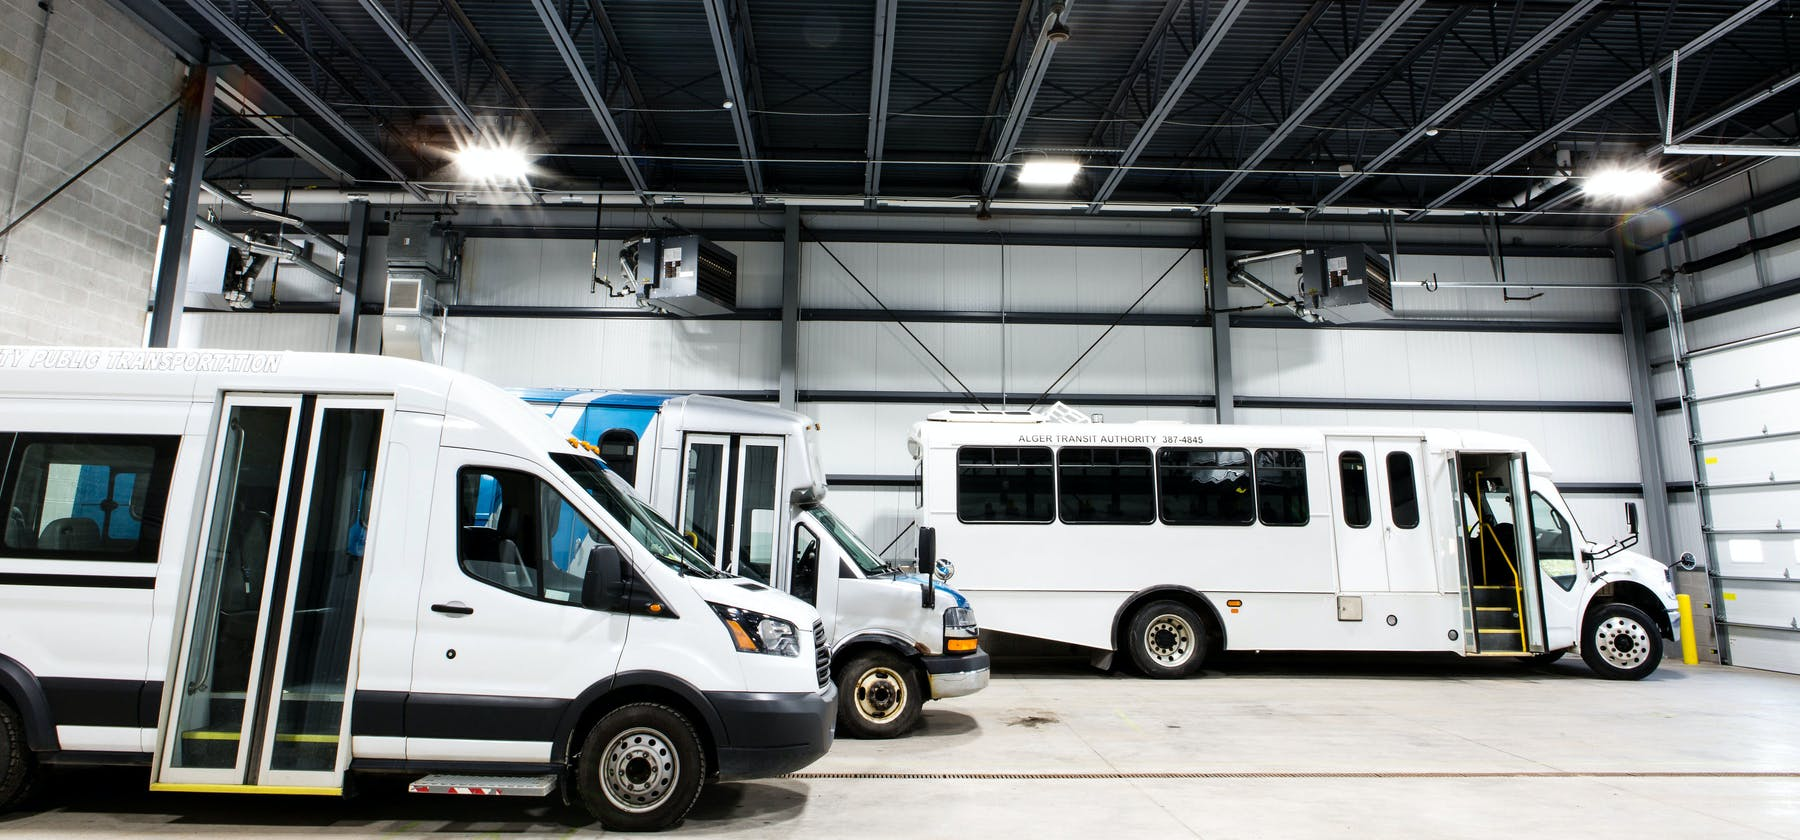 Altran interior with multiple buses